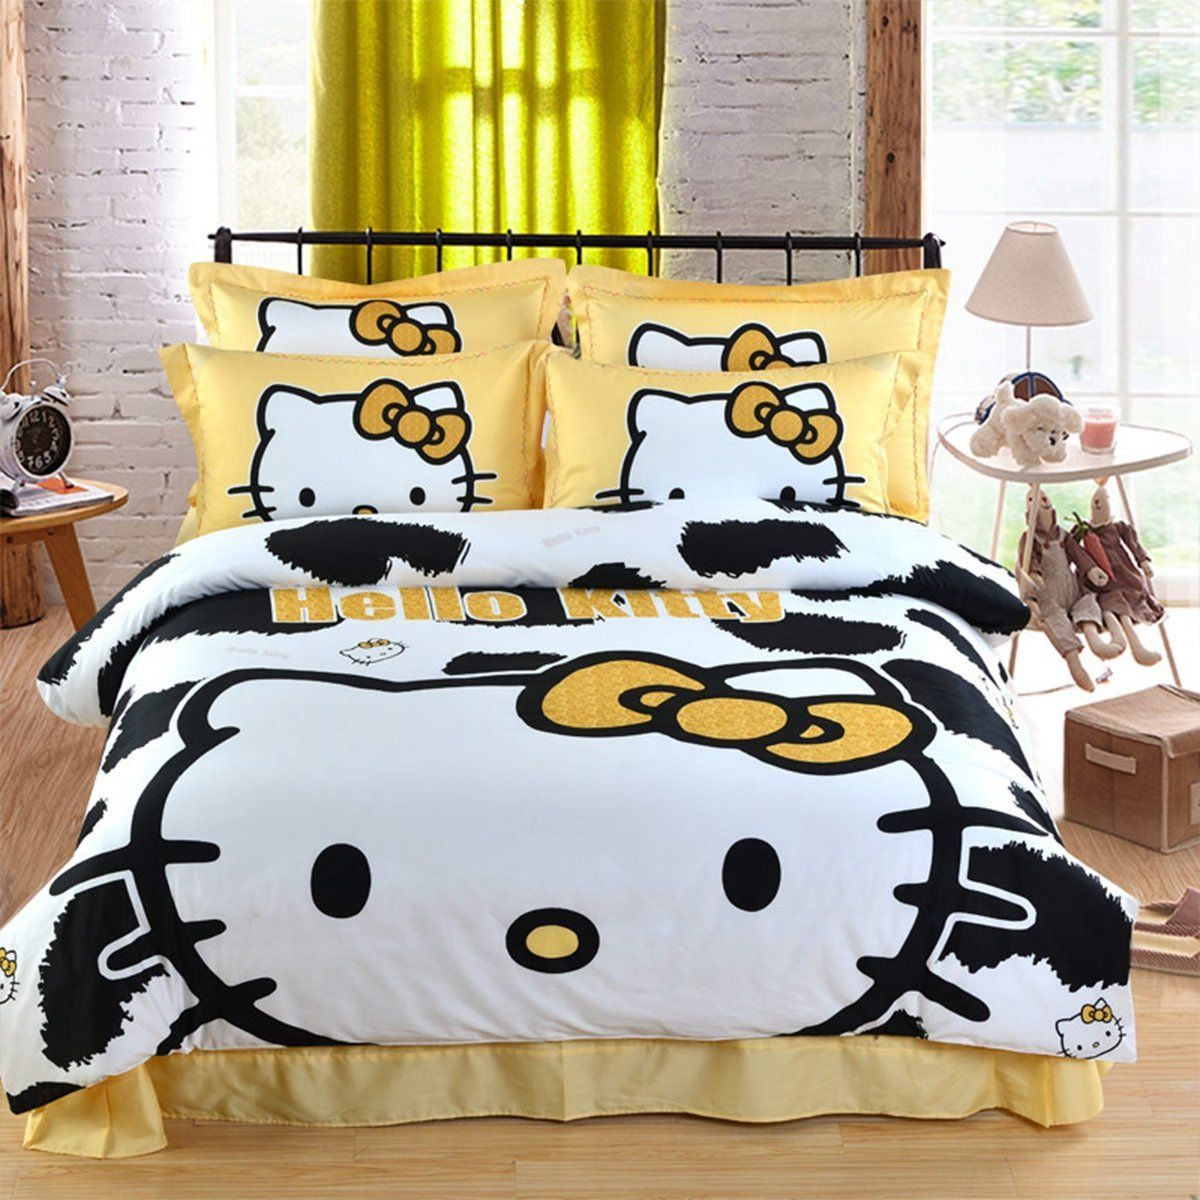 10 Best Hello Kitty Bedding Sets With Images Kids Bedding Sets